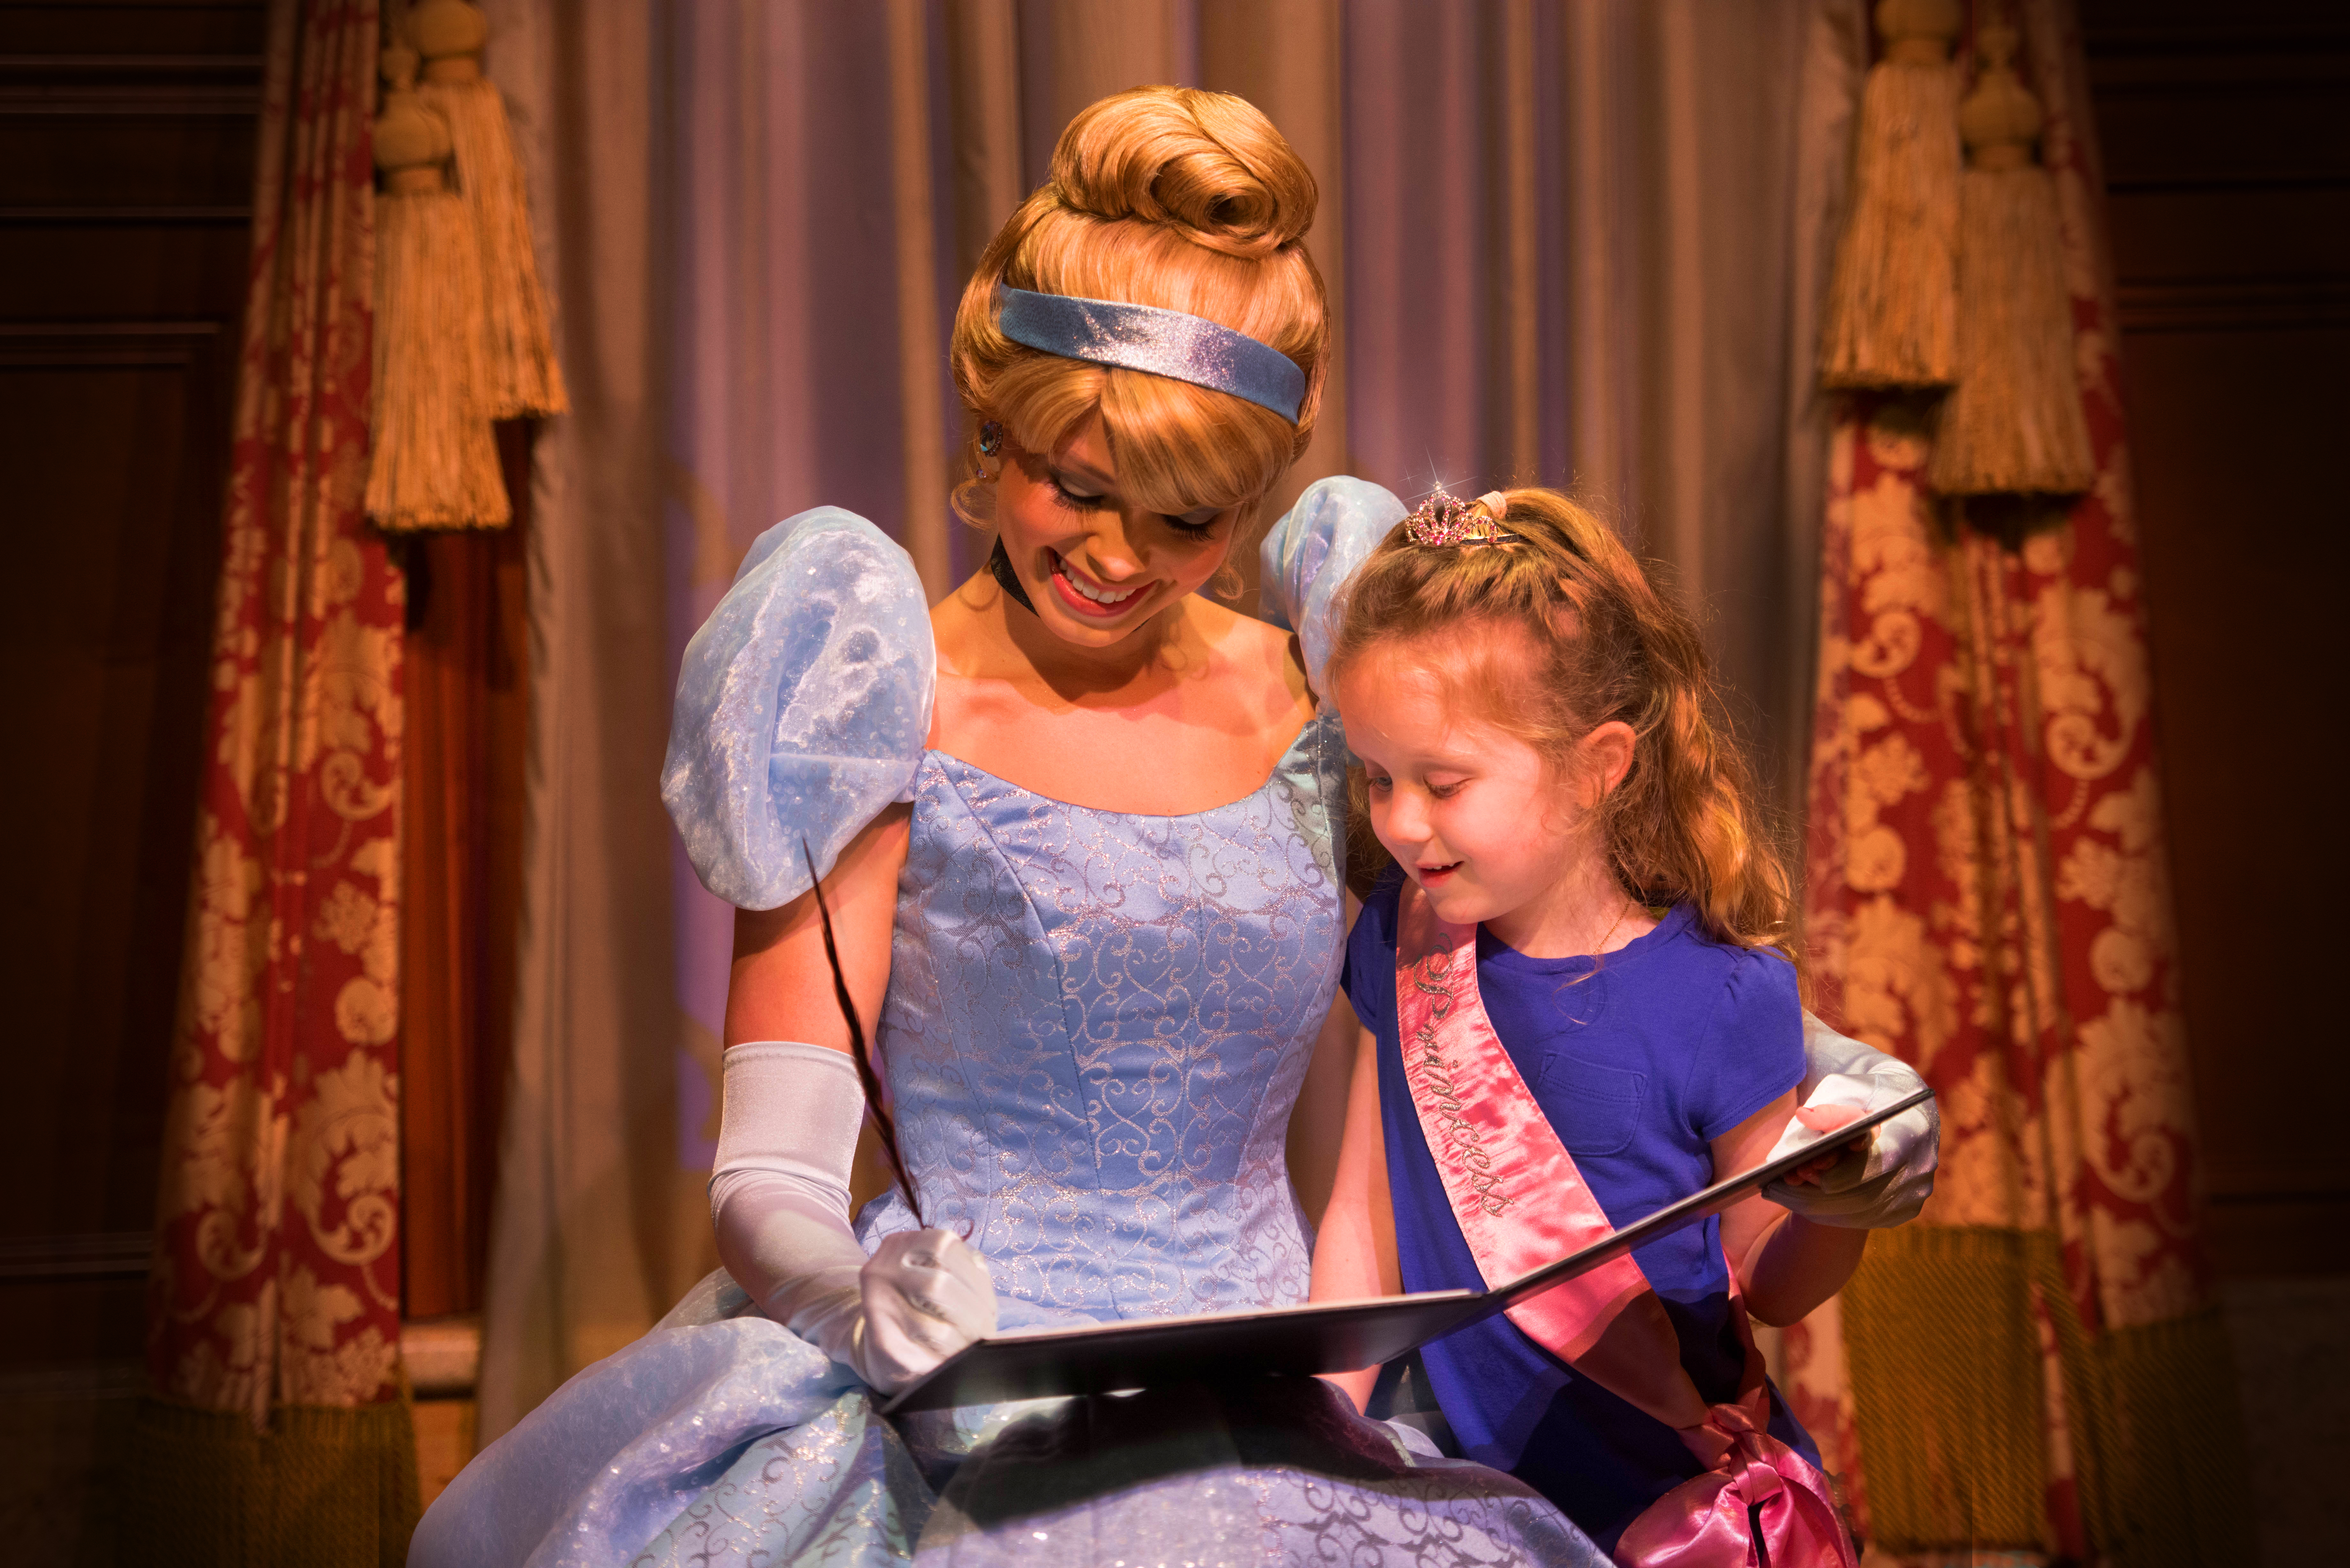 A girl wearing a tiara and princess sash watches excitedly as Cinderella signs her royal proclamation